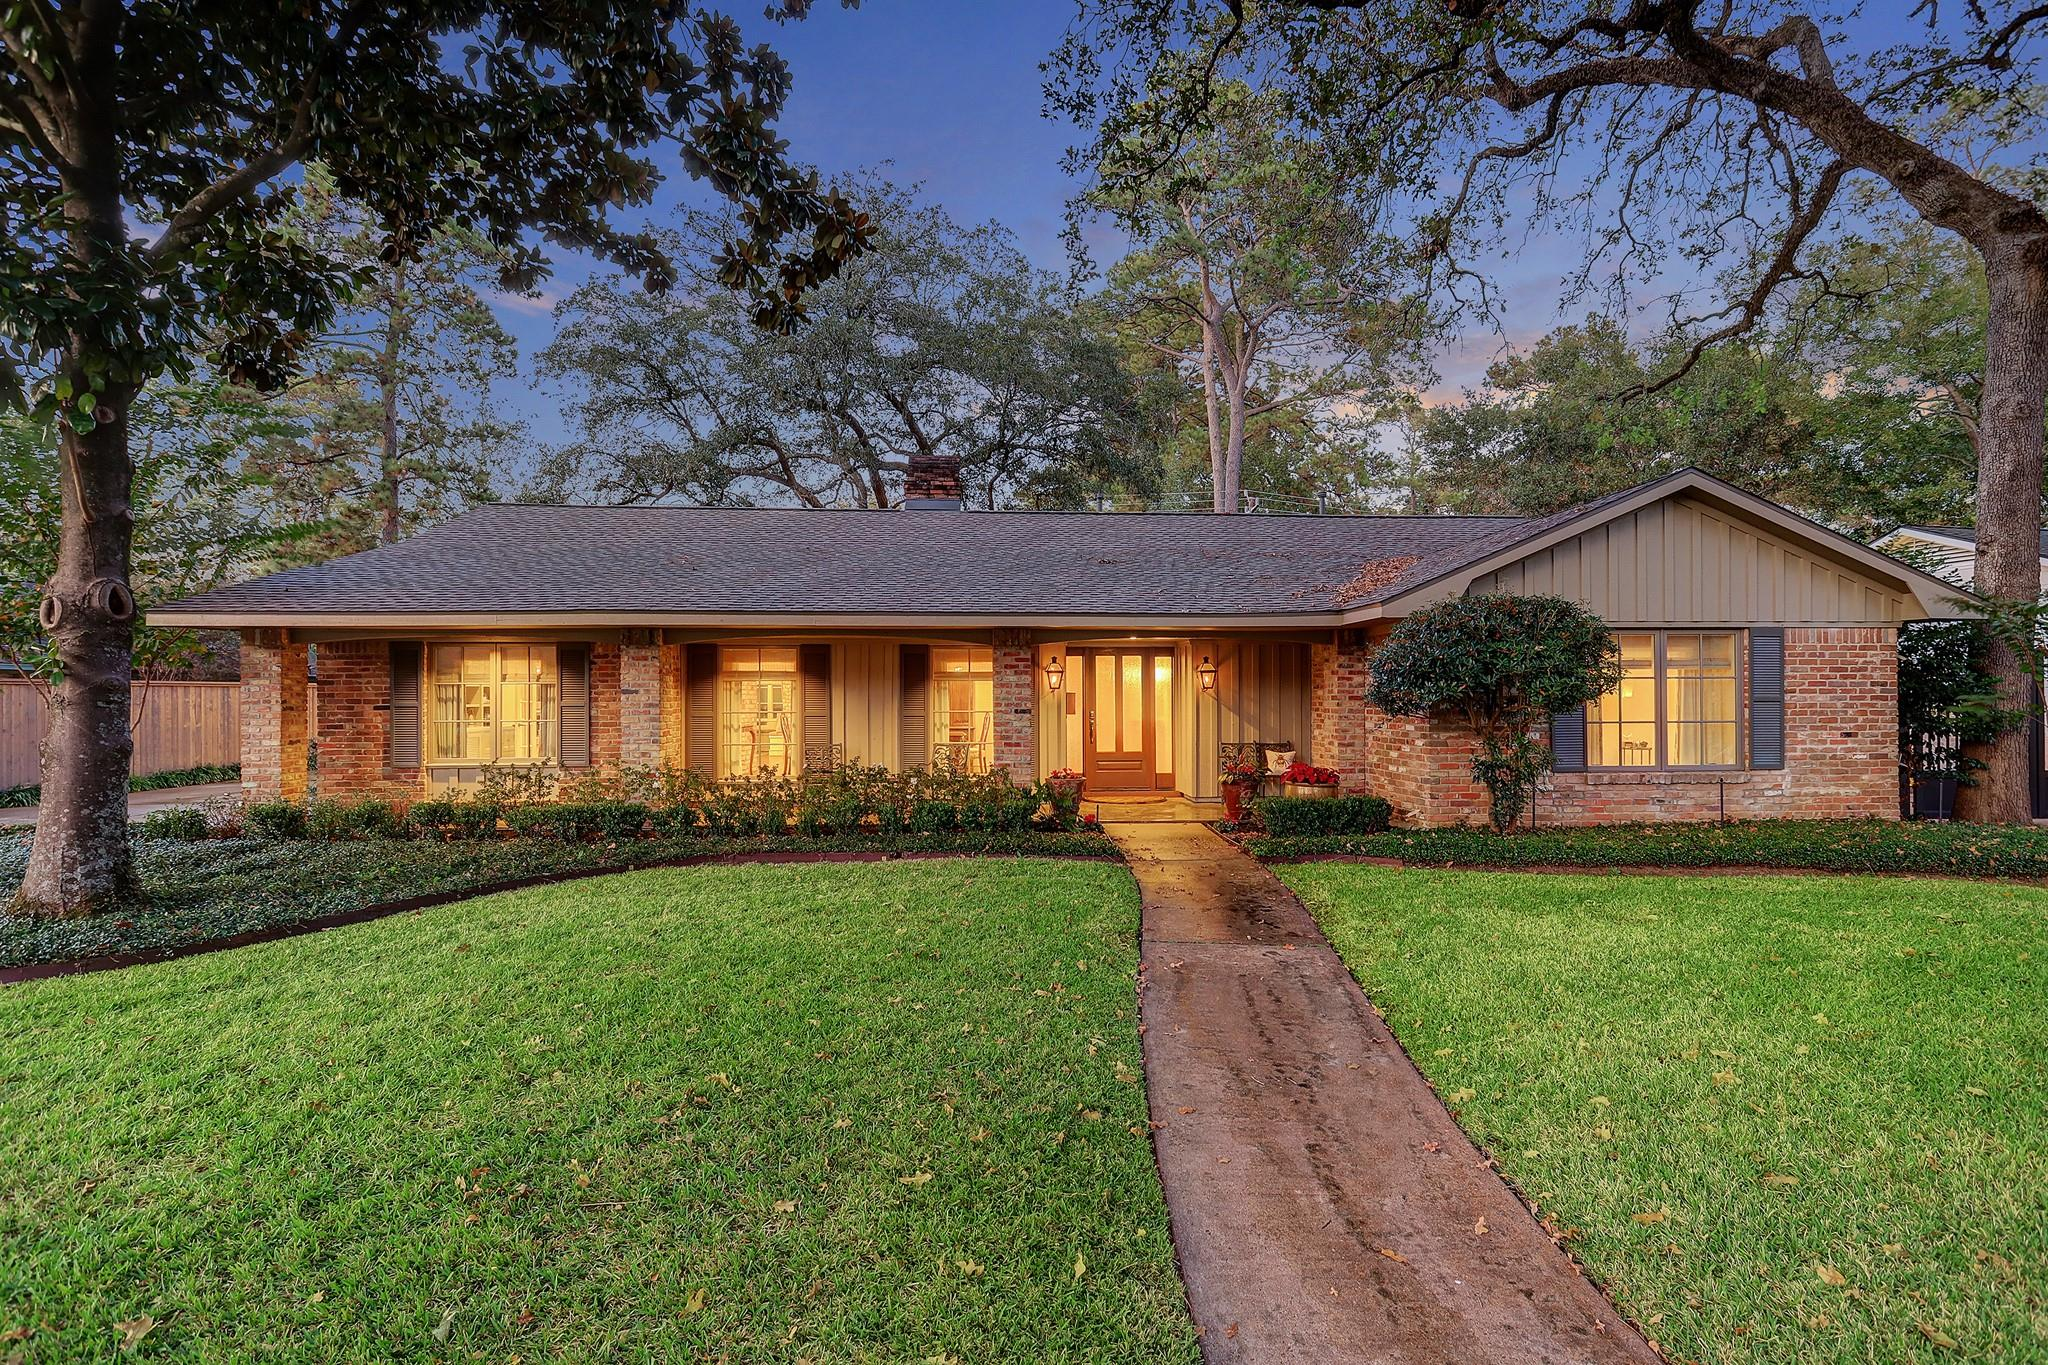 10022 Candlewood Drive Property Photo - Houston, TX real estate listing